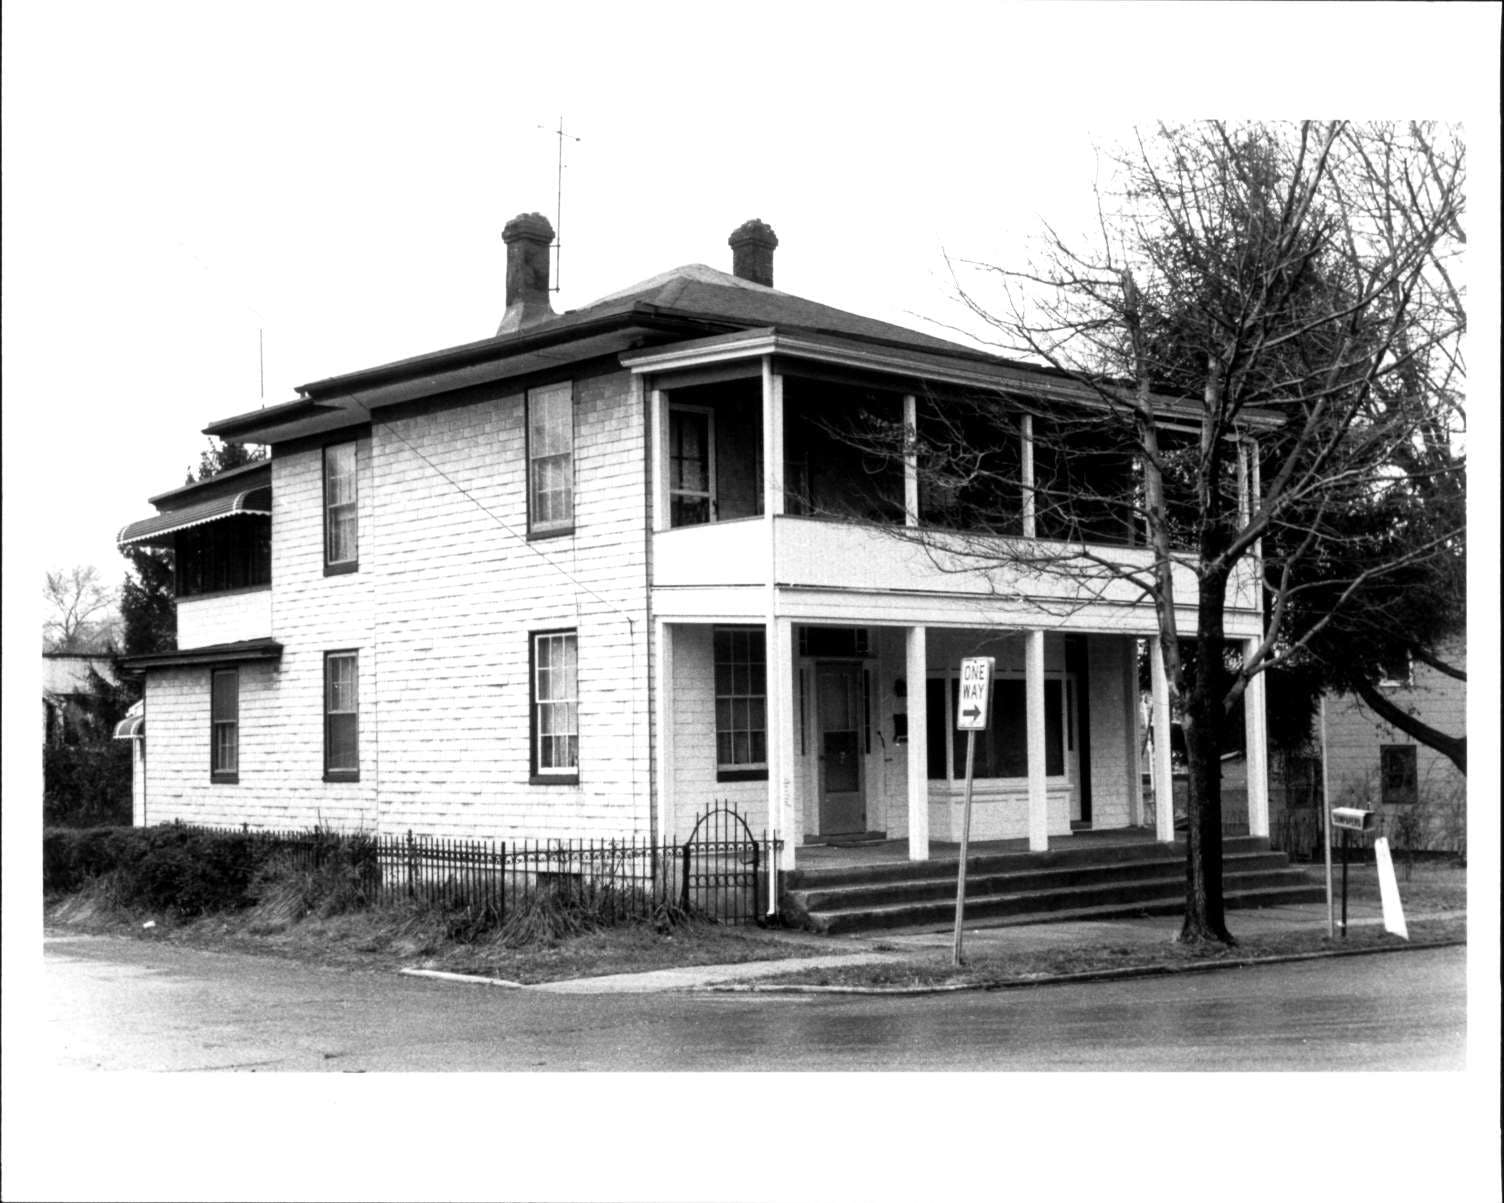 a vintage photo of a house